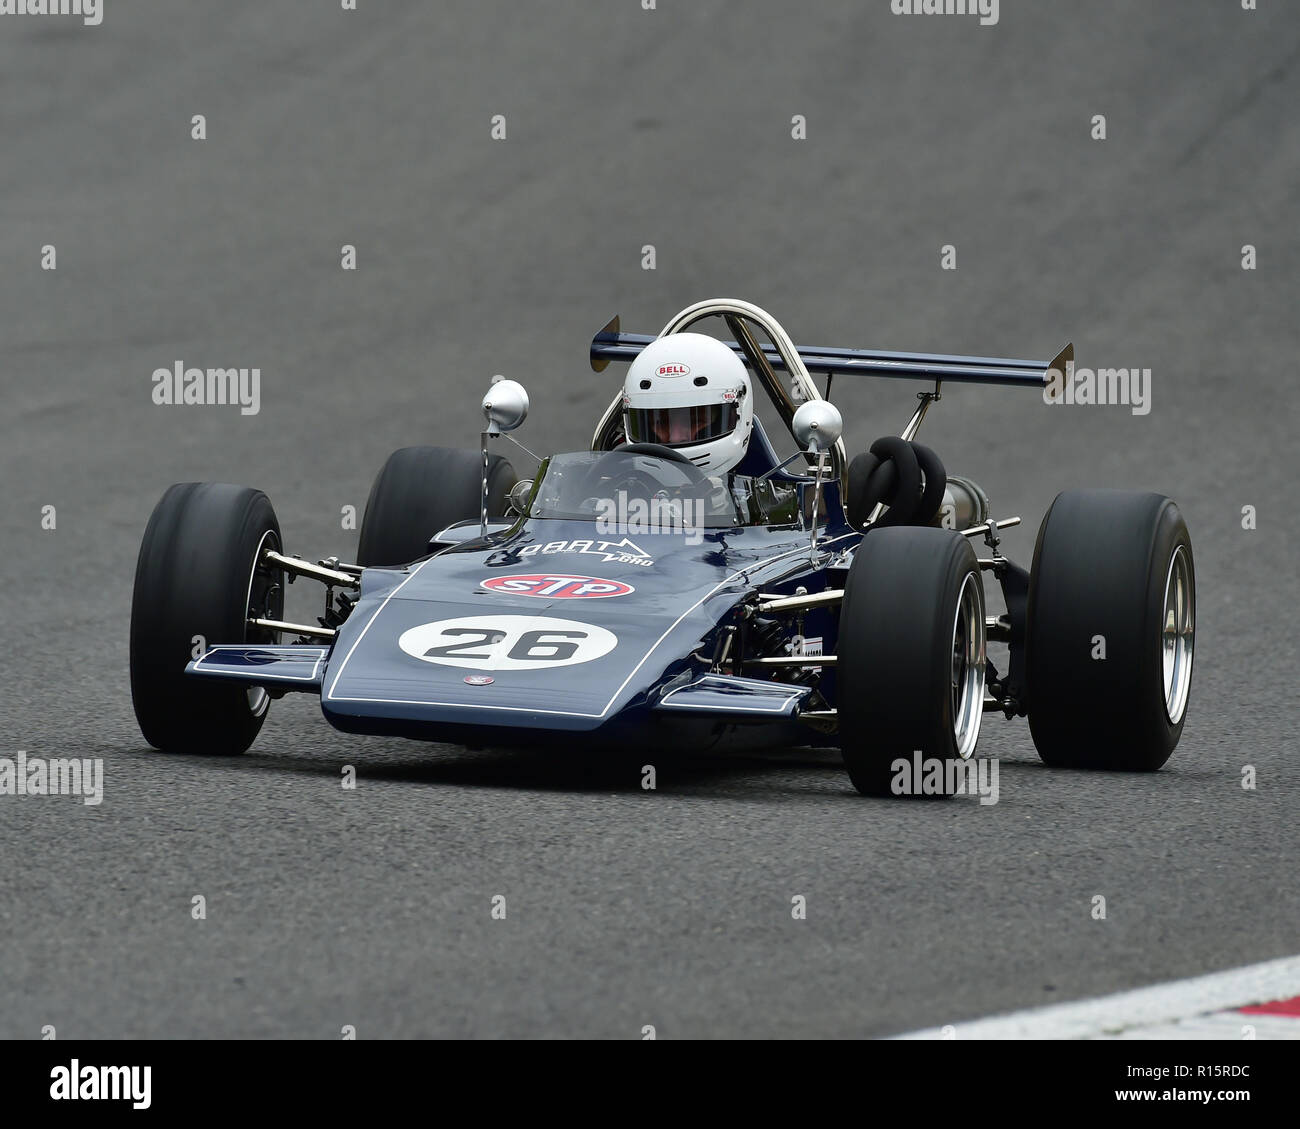 James Denty, GRD 373, Classic Formula 3, URS Classic FF2000, HSCC, Historic Race Meeting, Brands Hatch, September 2018, cars, Classic Racing Cars, His - Stock Image